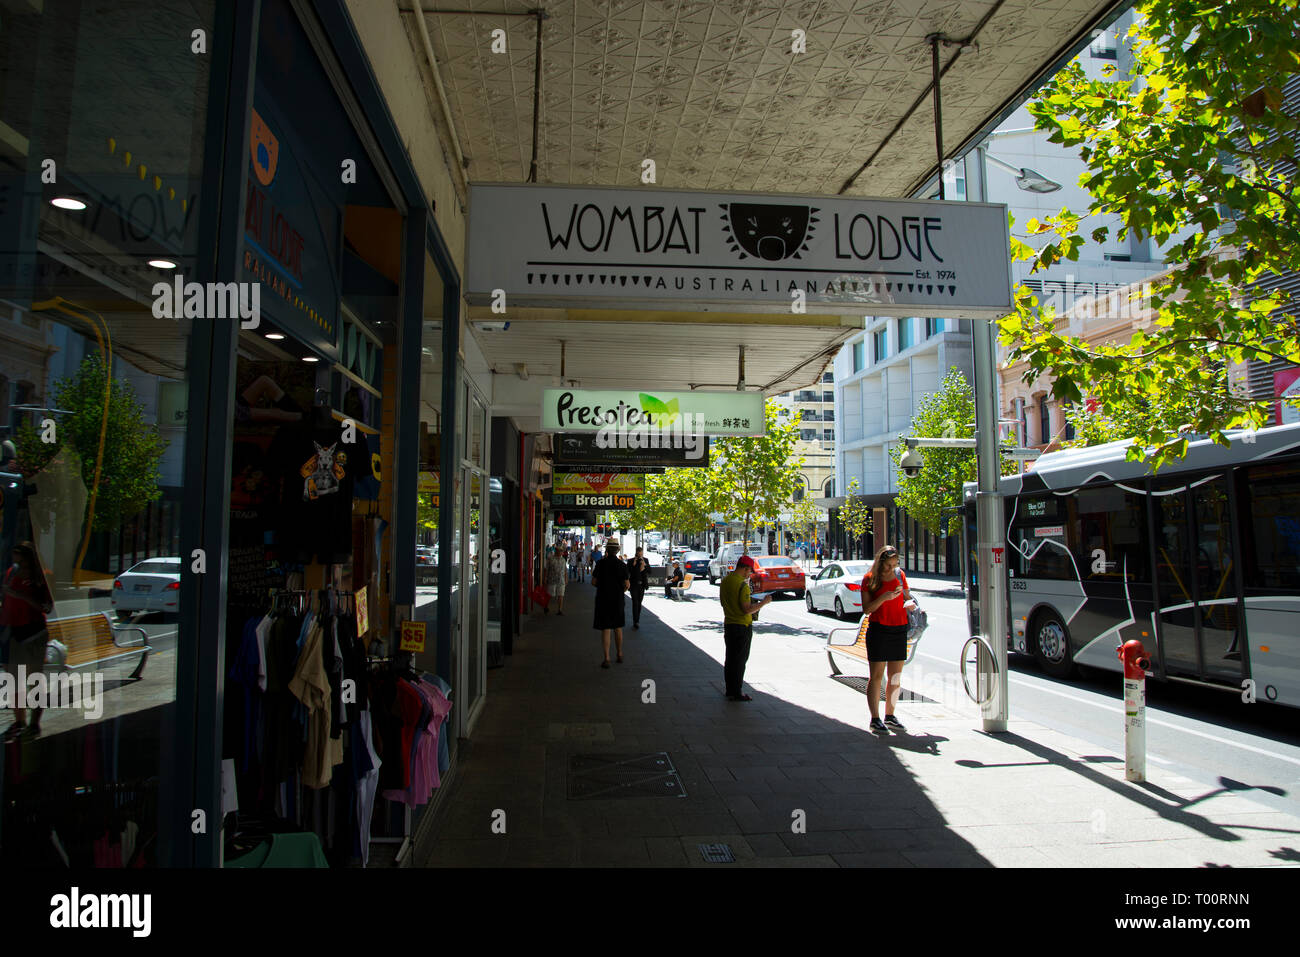 PERTH, AUSTRALIA - March 2, 2019: Commercial buildings on Barrack Street - Stock Image